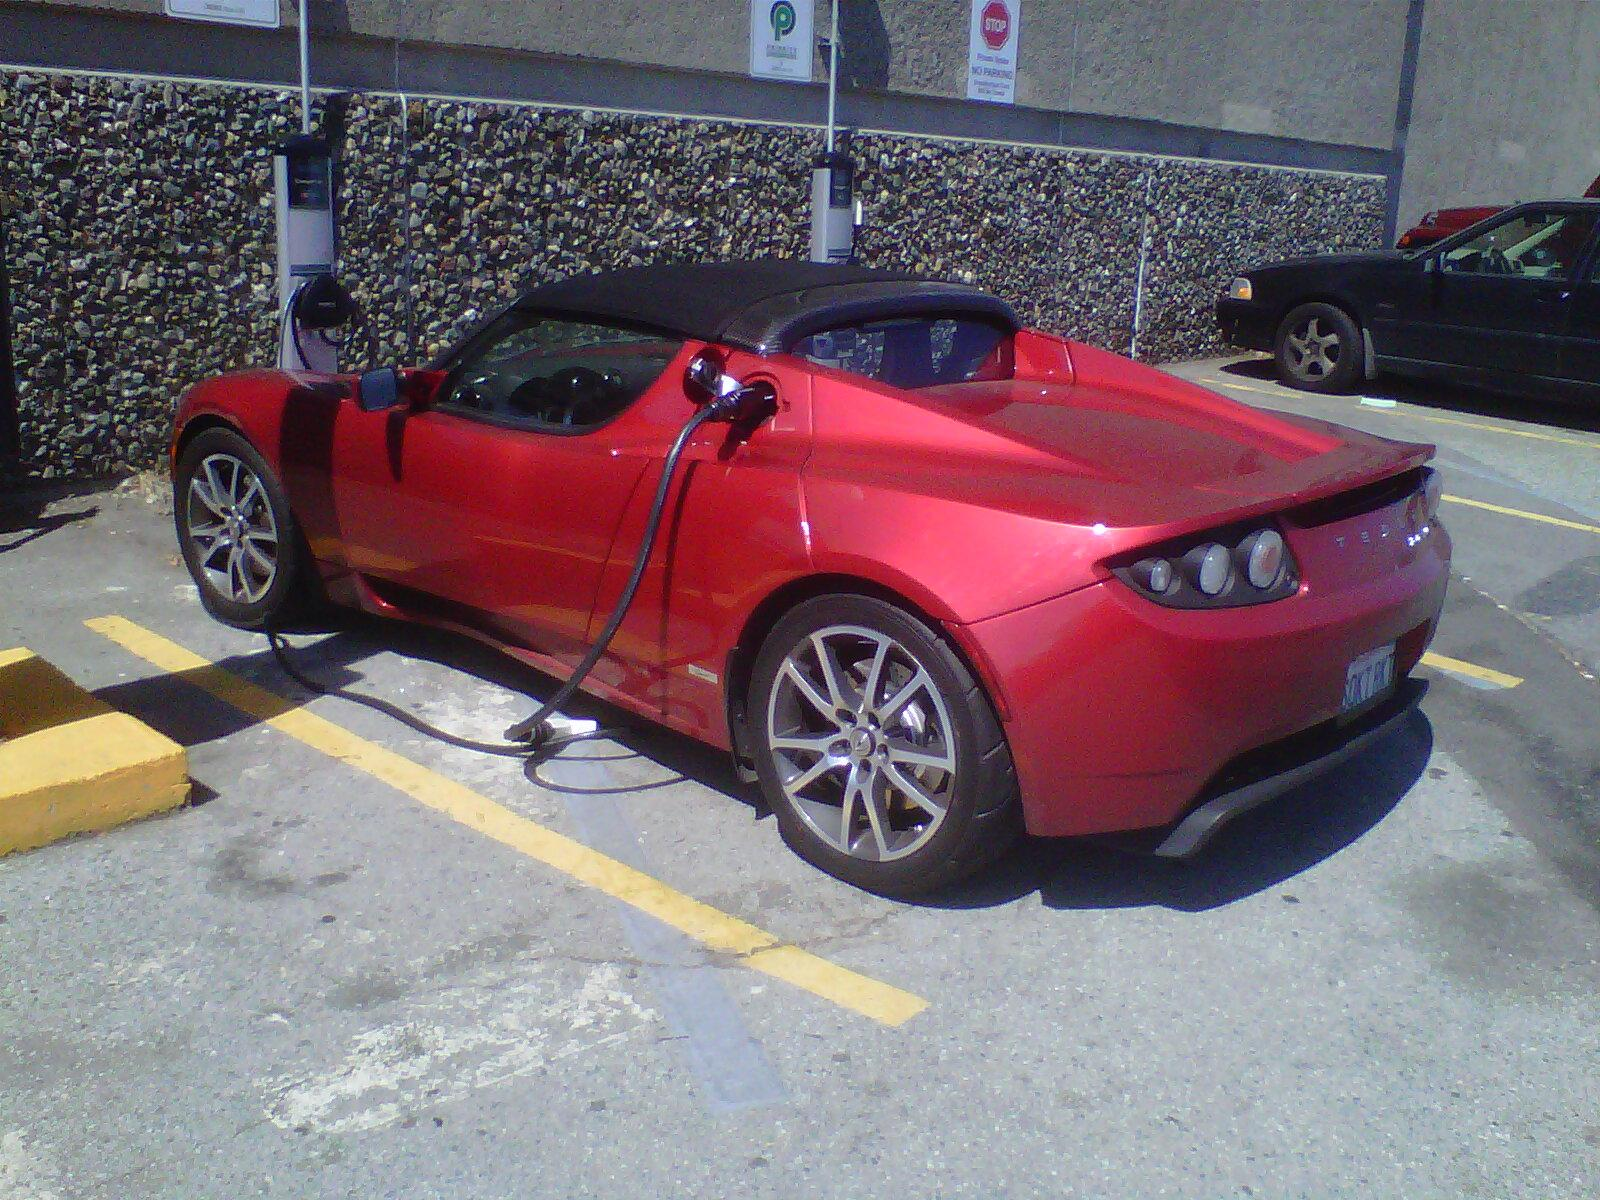 Tesla Roadster Charging in San Francisco. Credit: Author